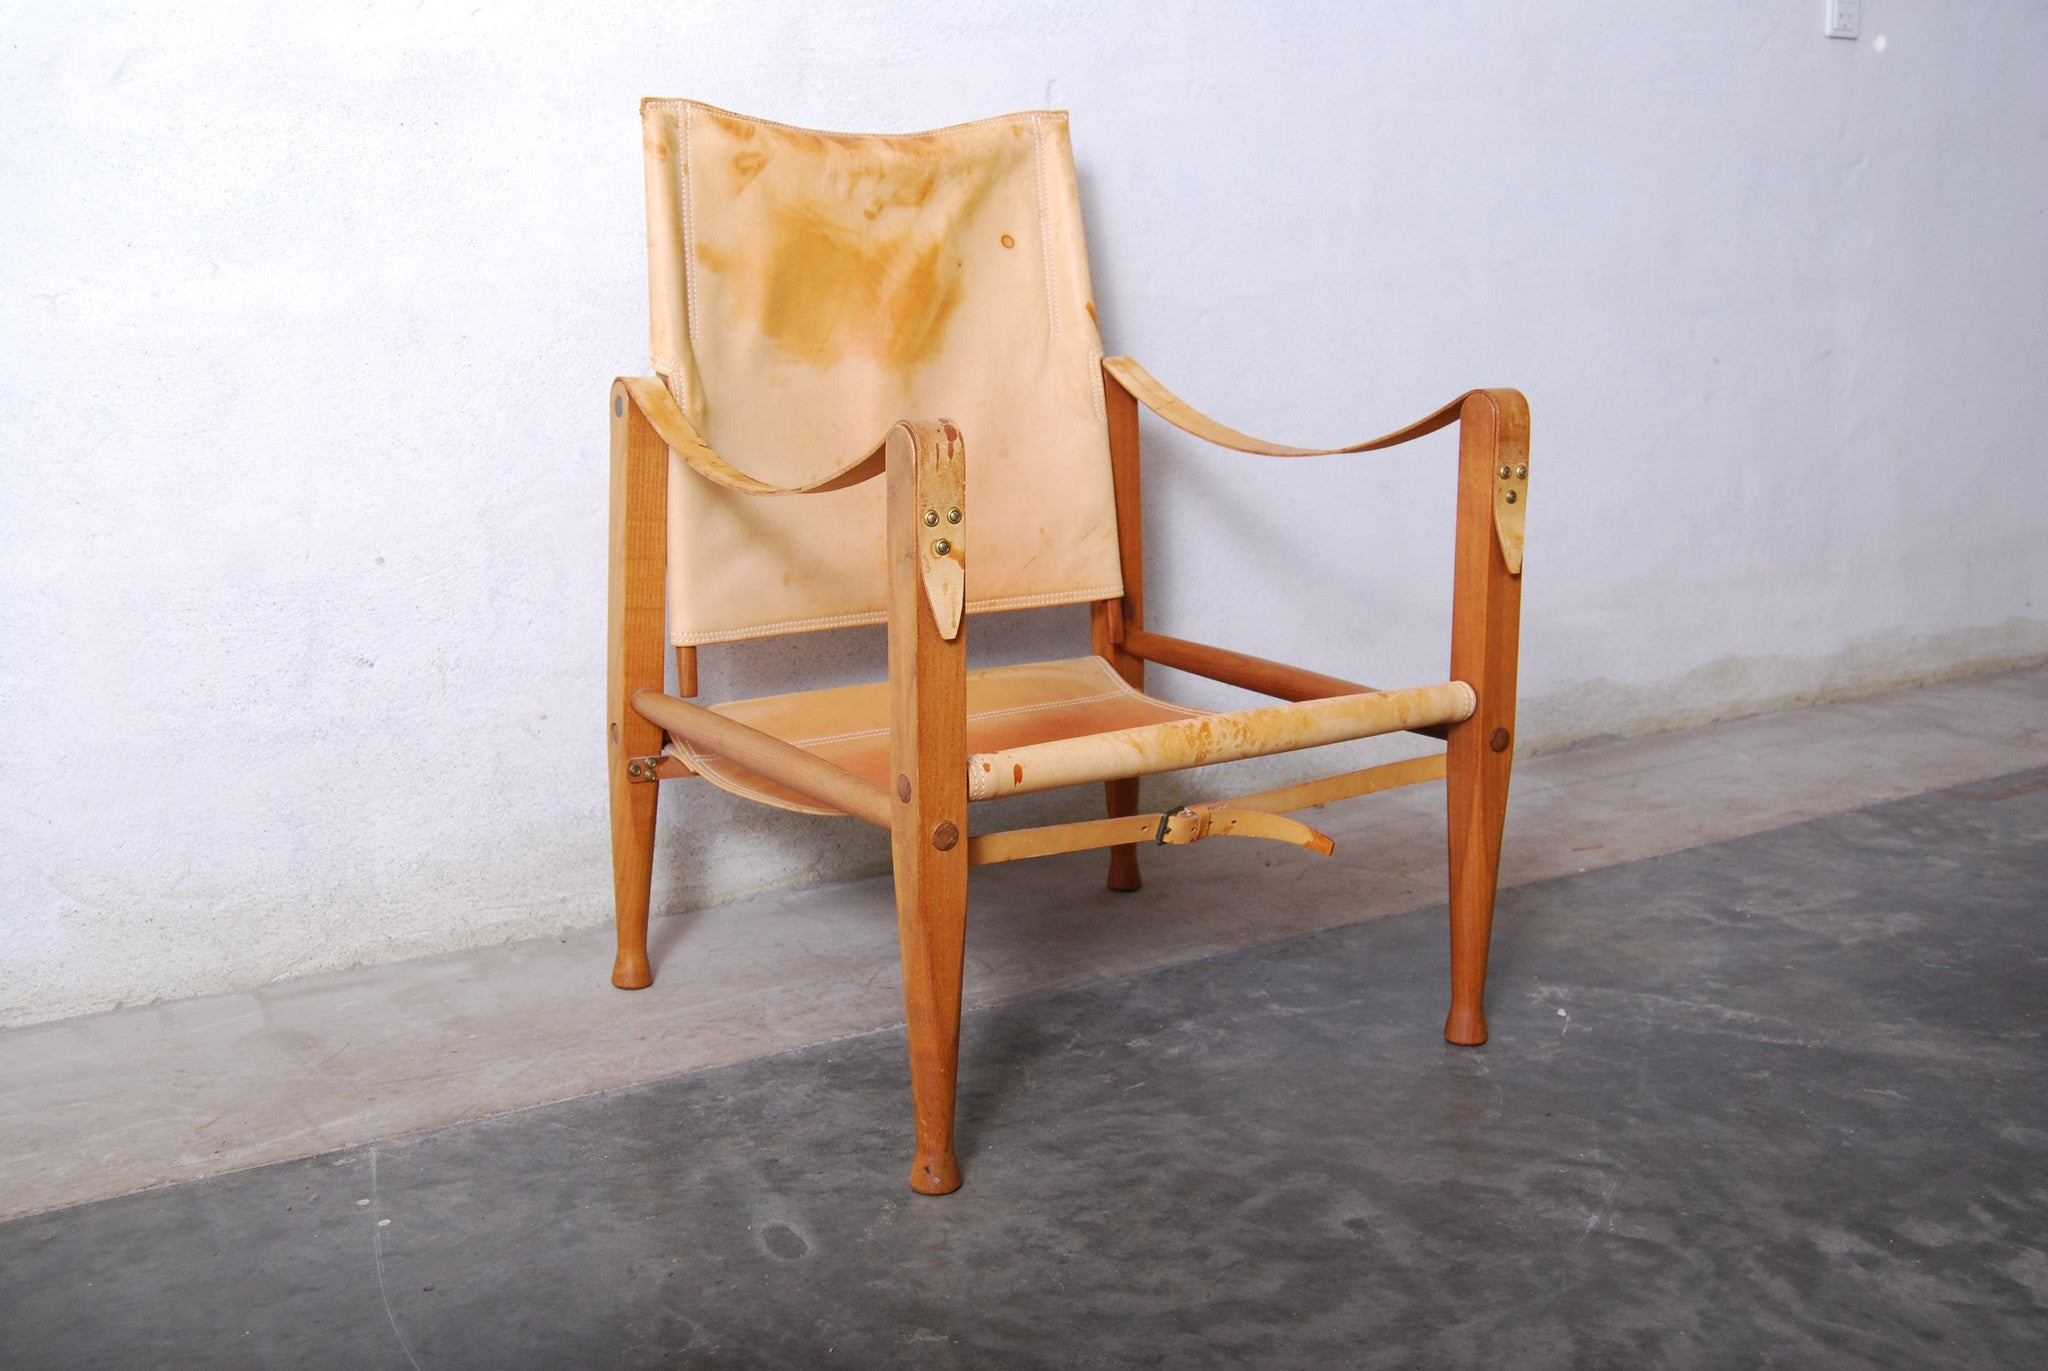 Pair of safari chairs by Kaare Klint